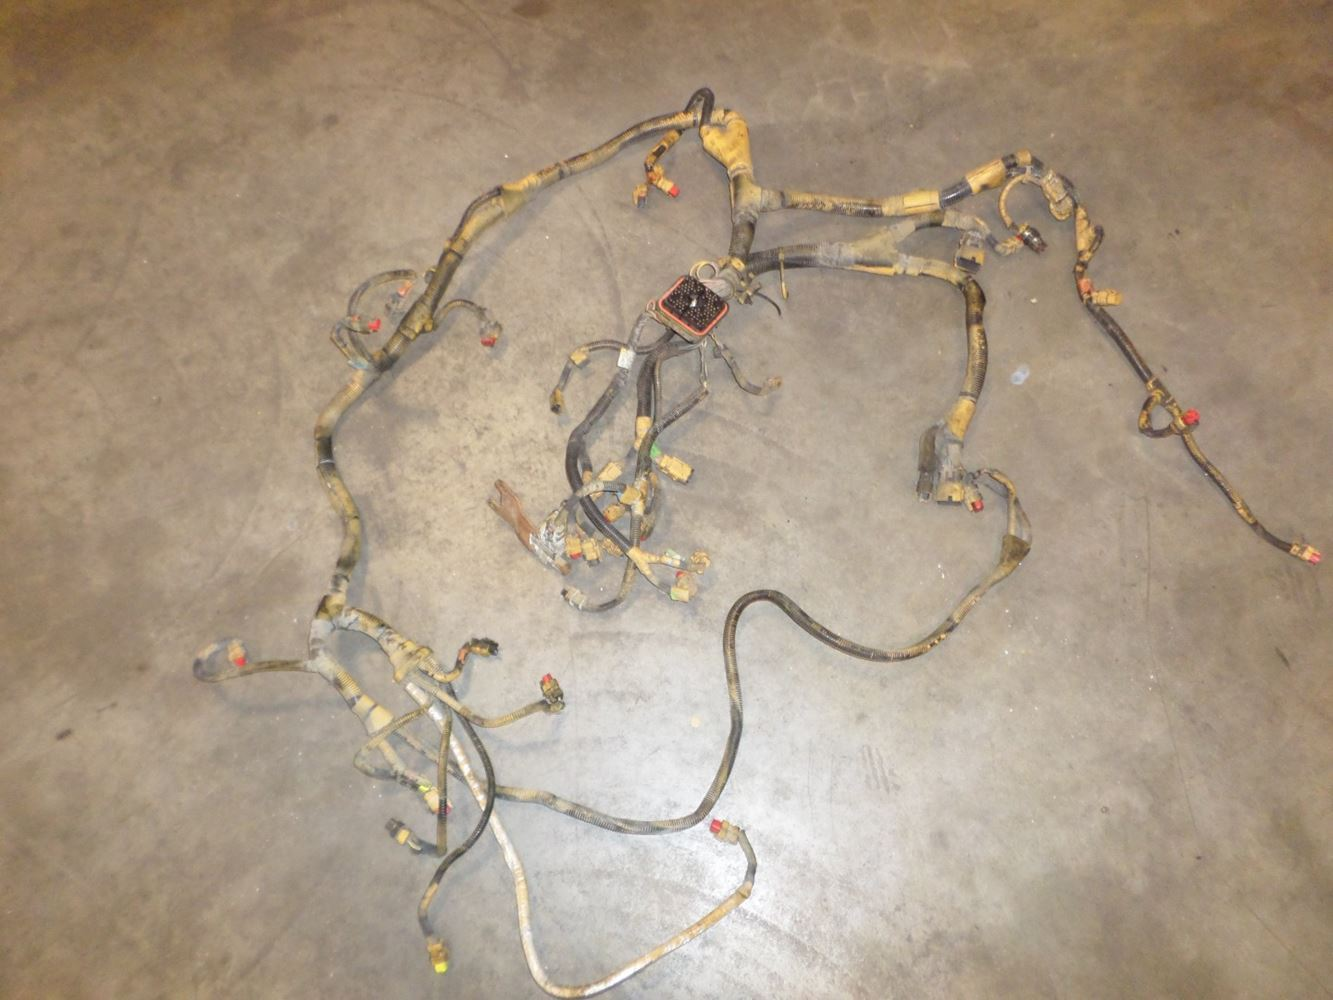 Cat C15 Wiring Harness Schematic 2019 Tpi Caterpillar Stock Dcw3591ti Harnesses